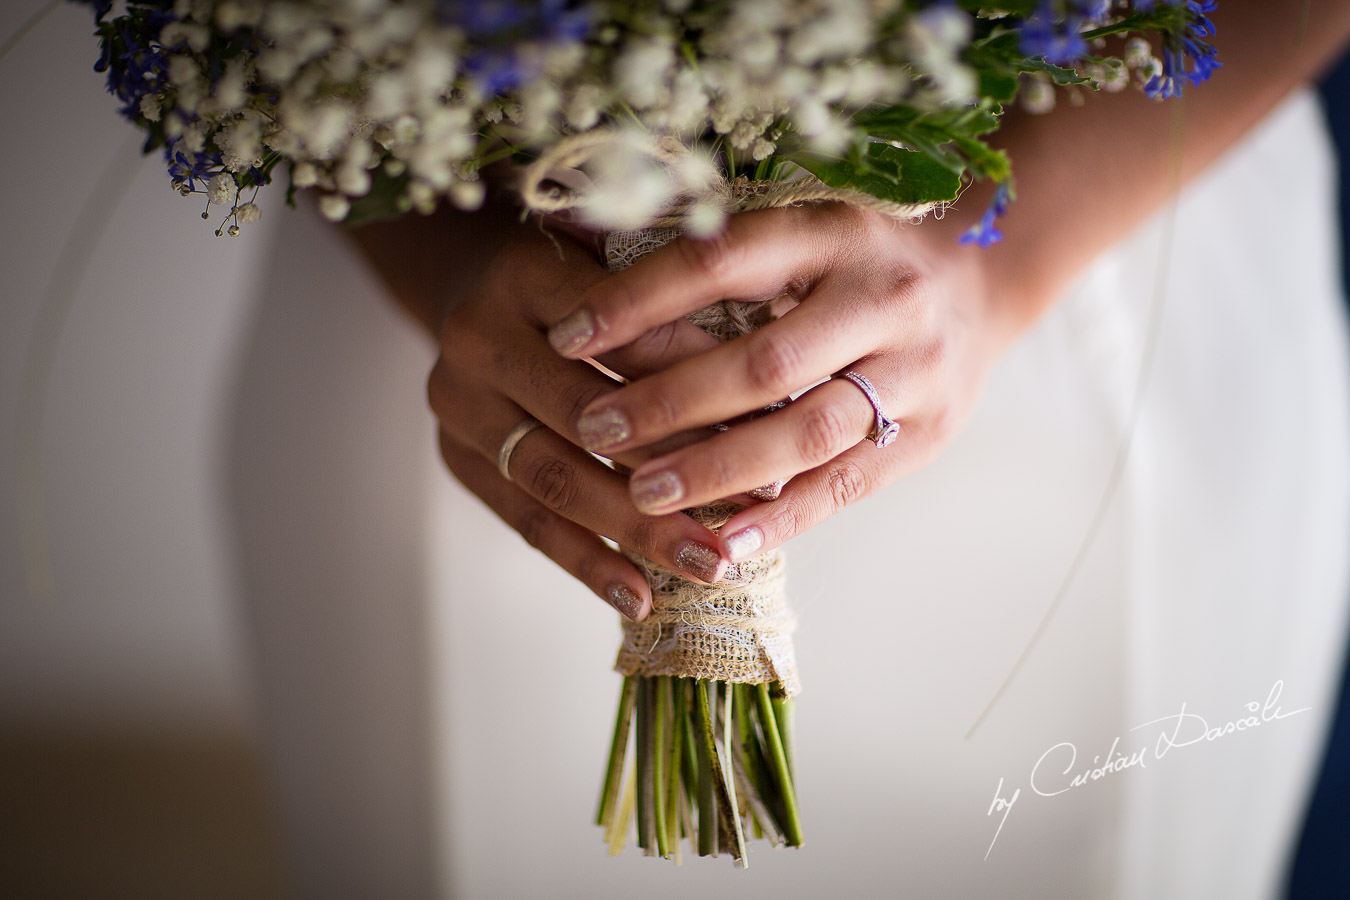 Real moment captured with the bridal bouquet and the engagement ring at a wedding at Minthis Hills in Cyprus, by Cristian Dascalu.